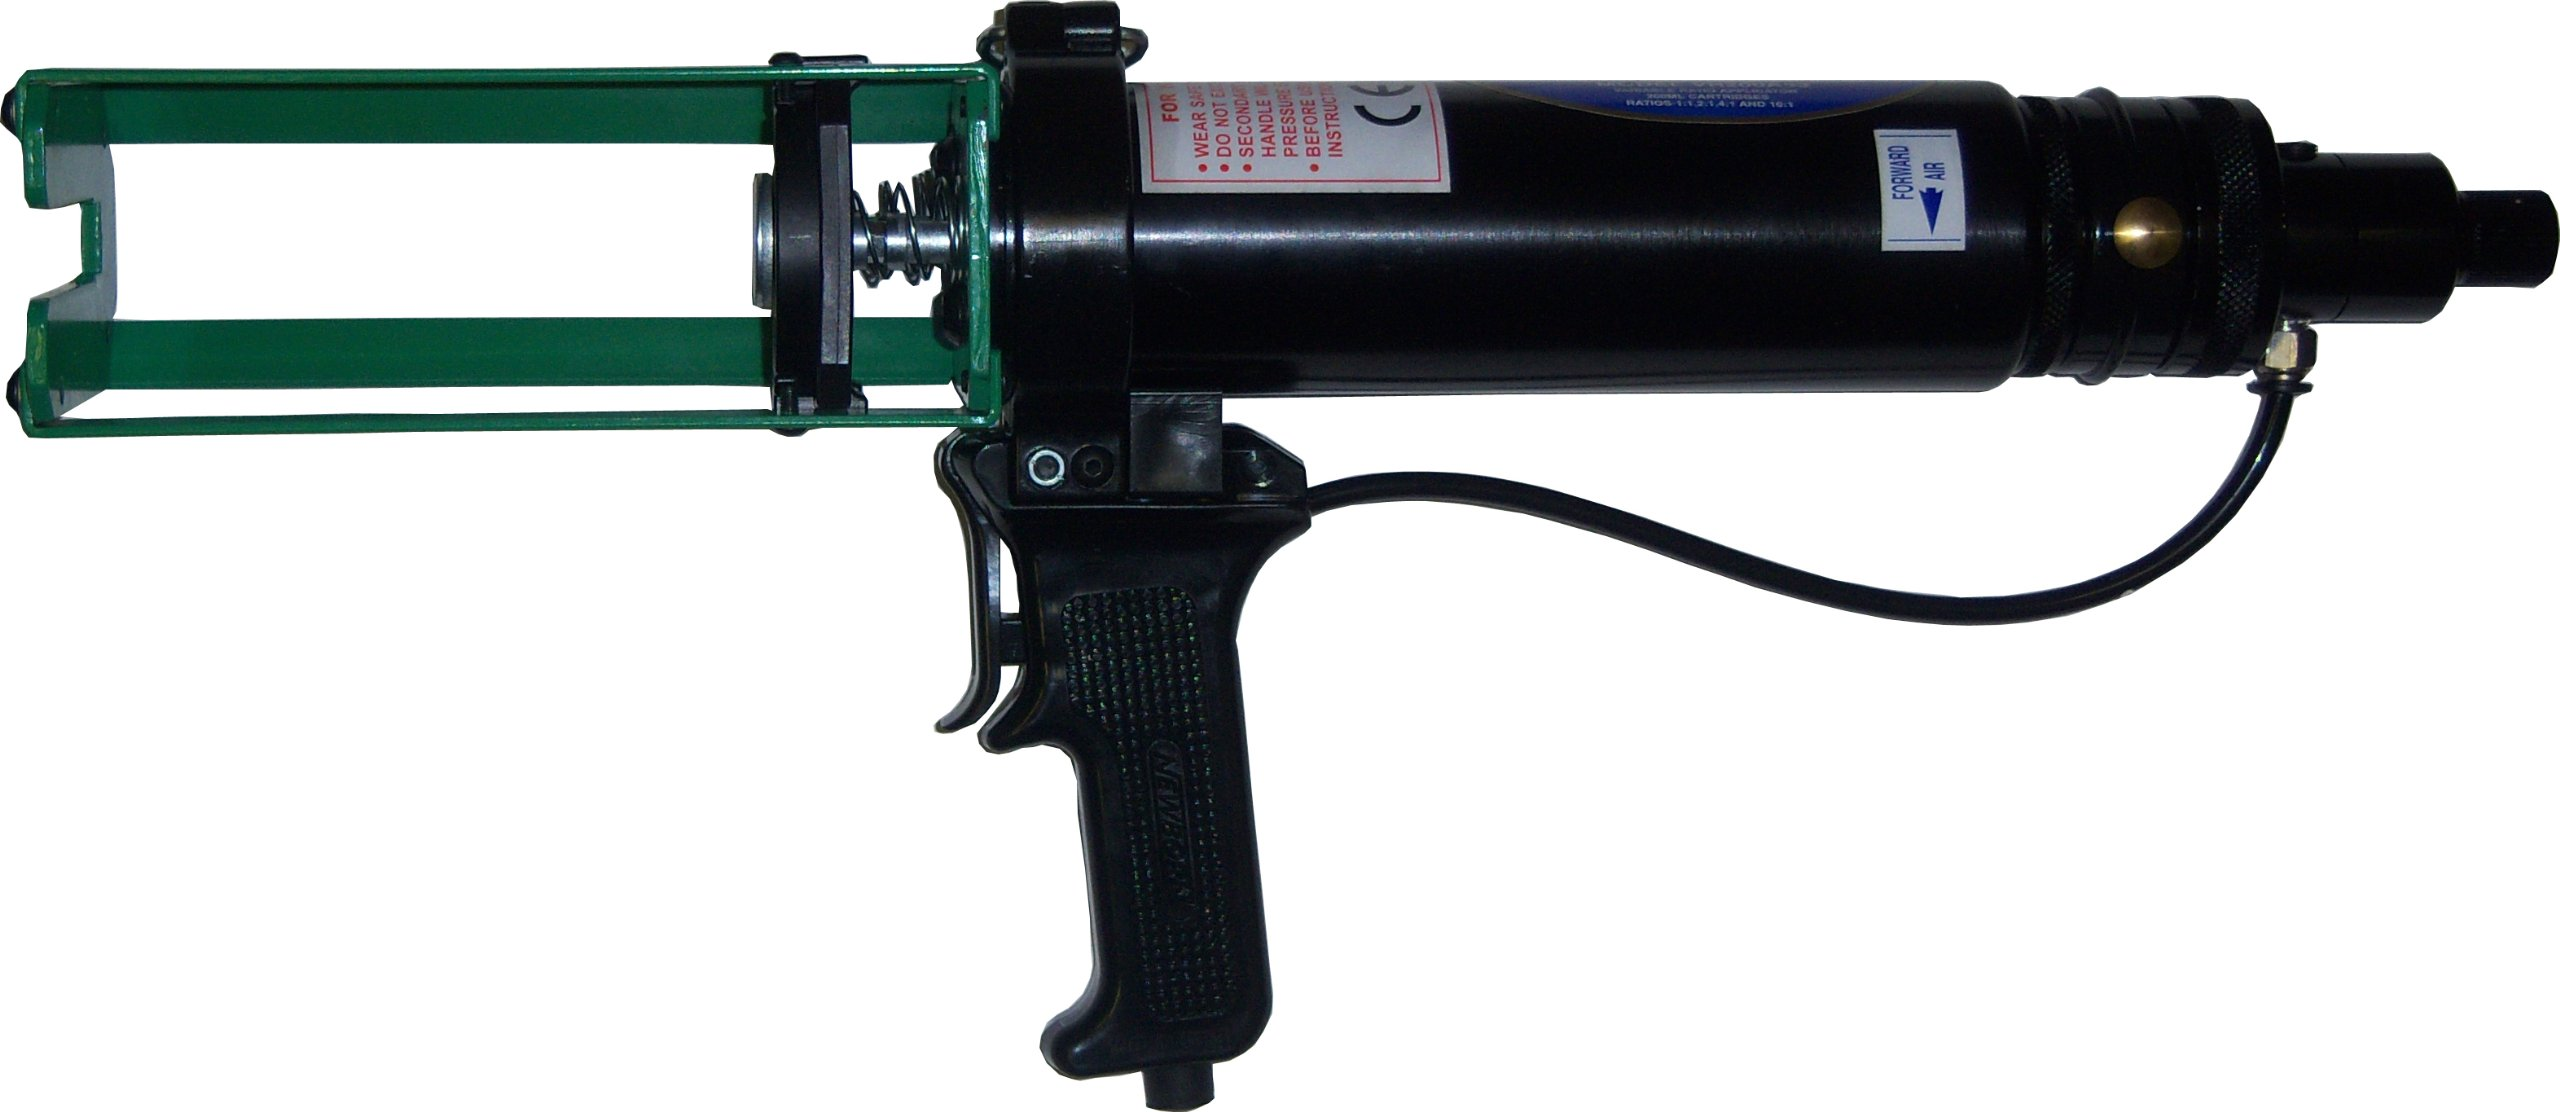 Newborn VR200A83 Dual-Component Variable Ratio Pneumatic Applicator, for 200 mL Cartridges, 100 psi